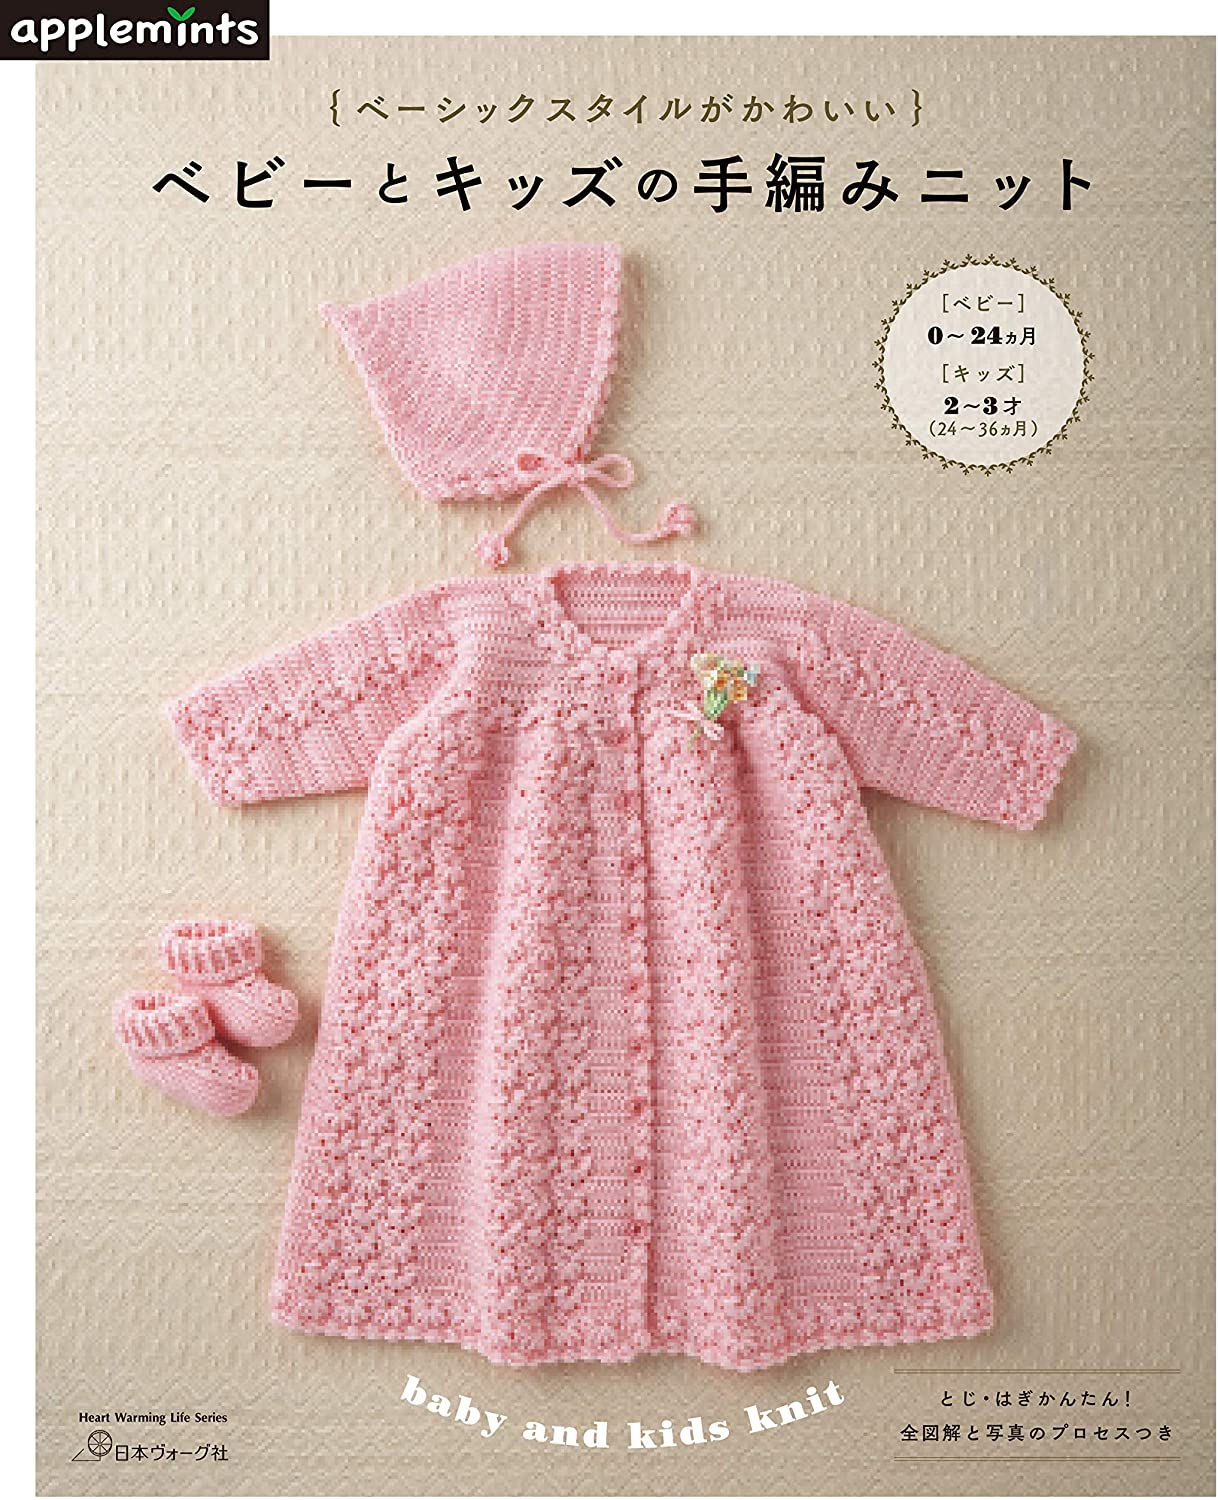 Baby and kids hand-knit with cute basic style